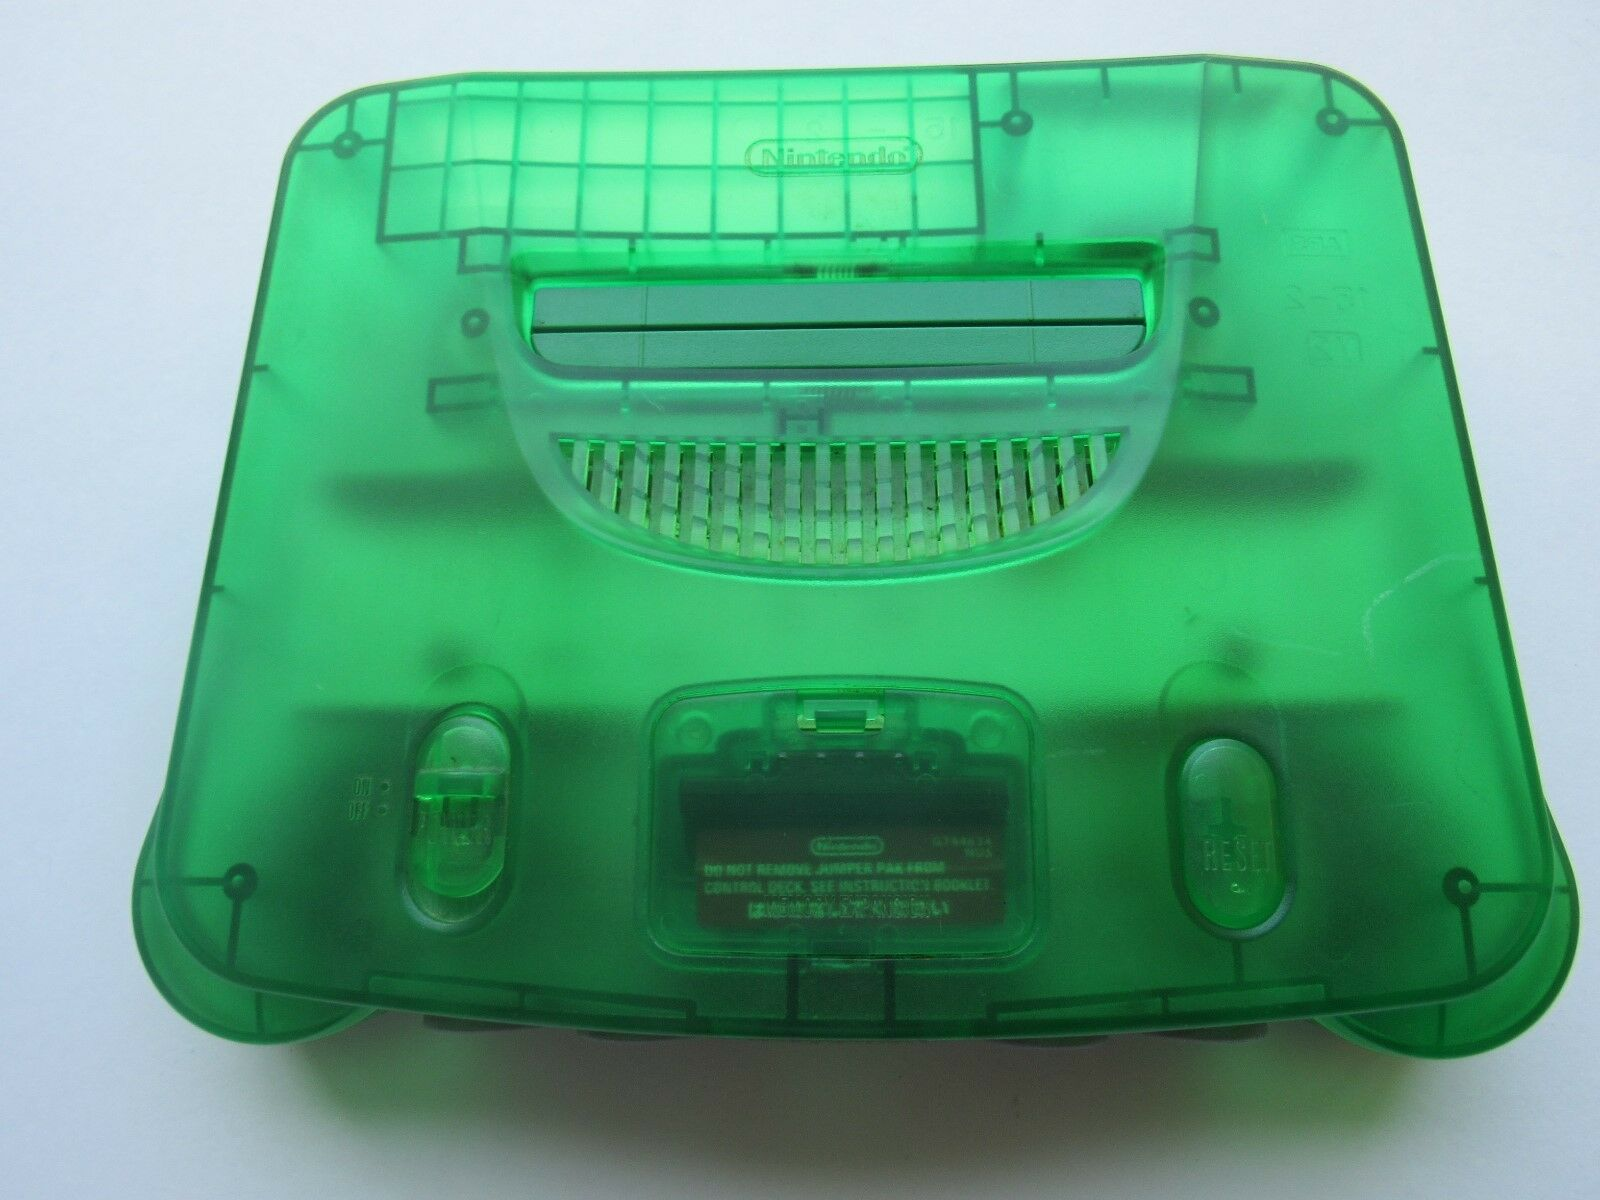 *GOOD* Nintendo 64 N64 Video Game Console Selection Funtastic Pokemon Gold PICK! Jungle Green *Console &  Jumper Pack*